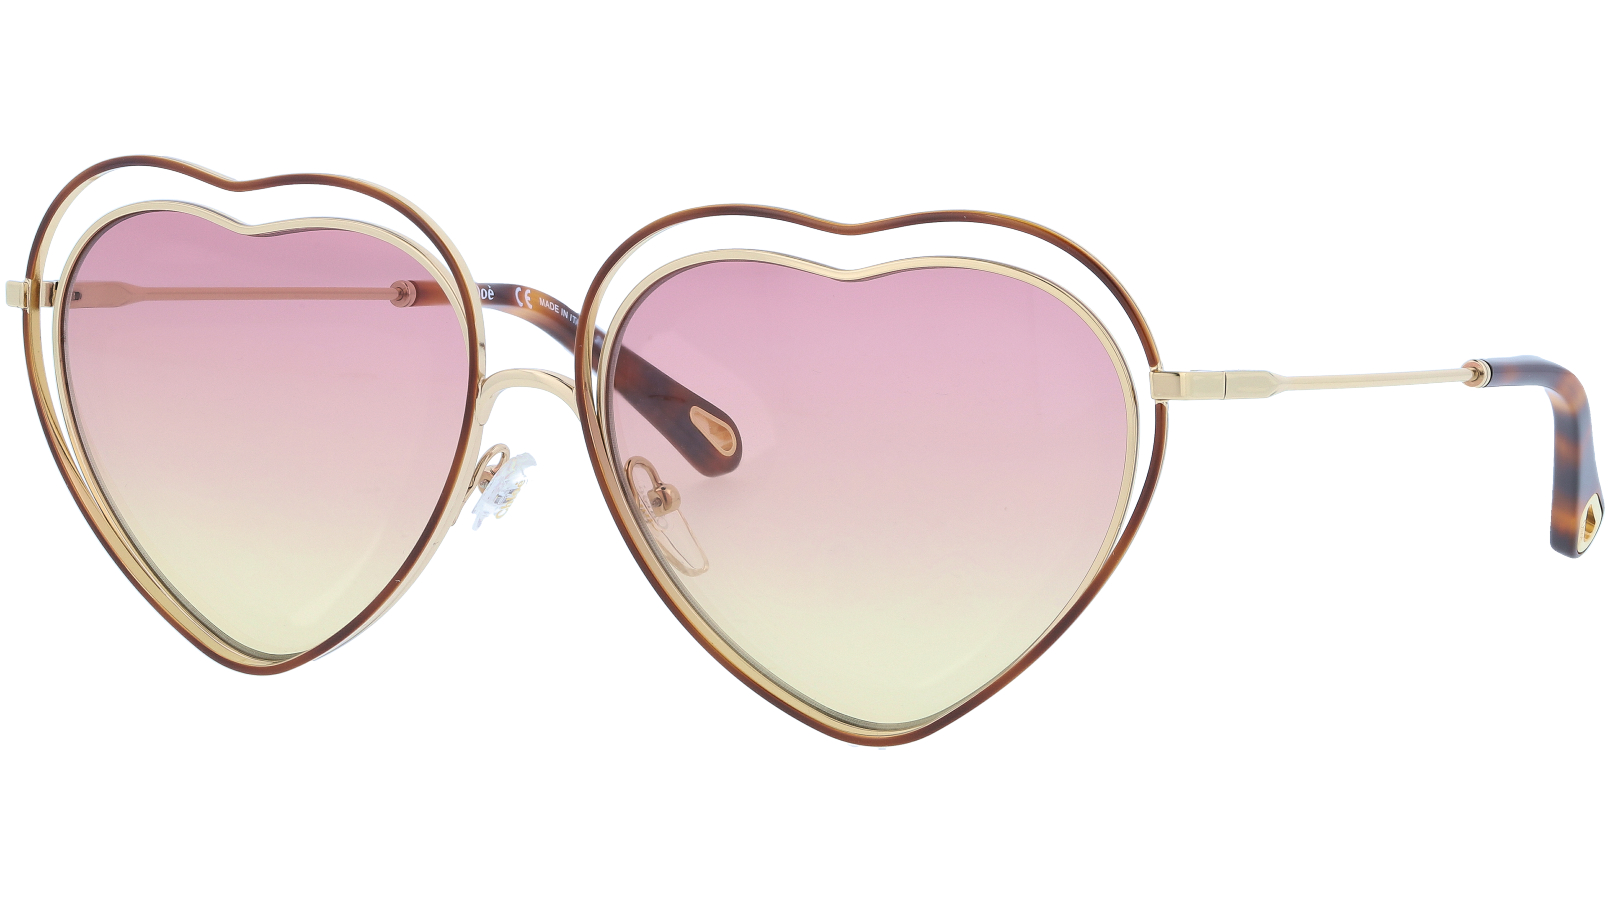 CHLOE CE131S 239 61 Havana Rose Poppy Heart Sunglasses